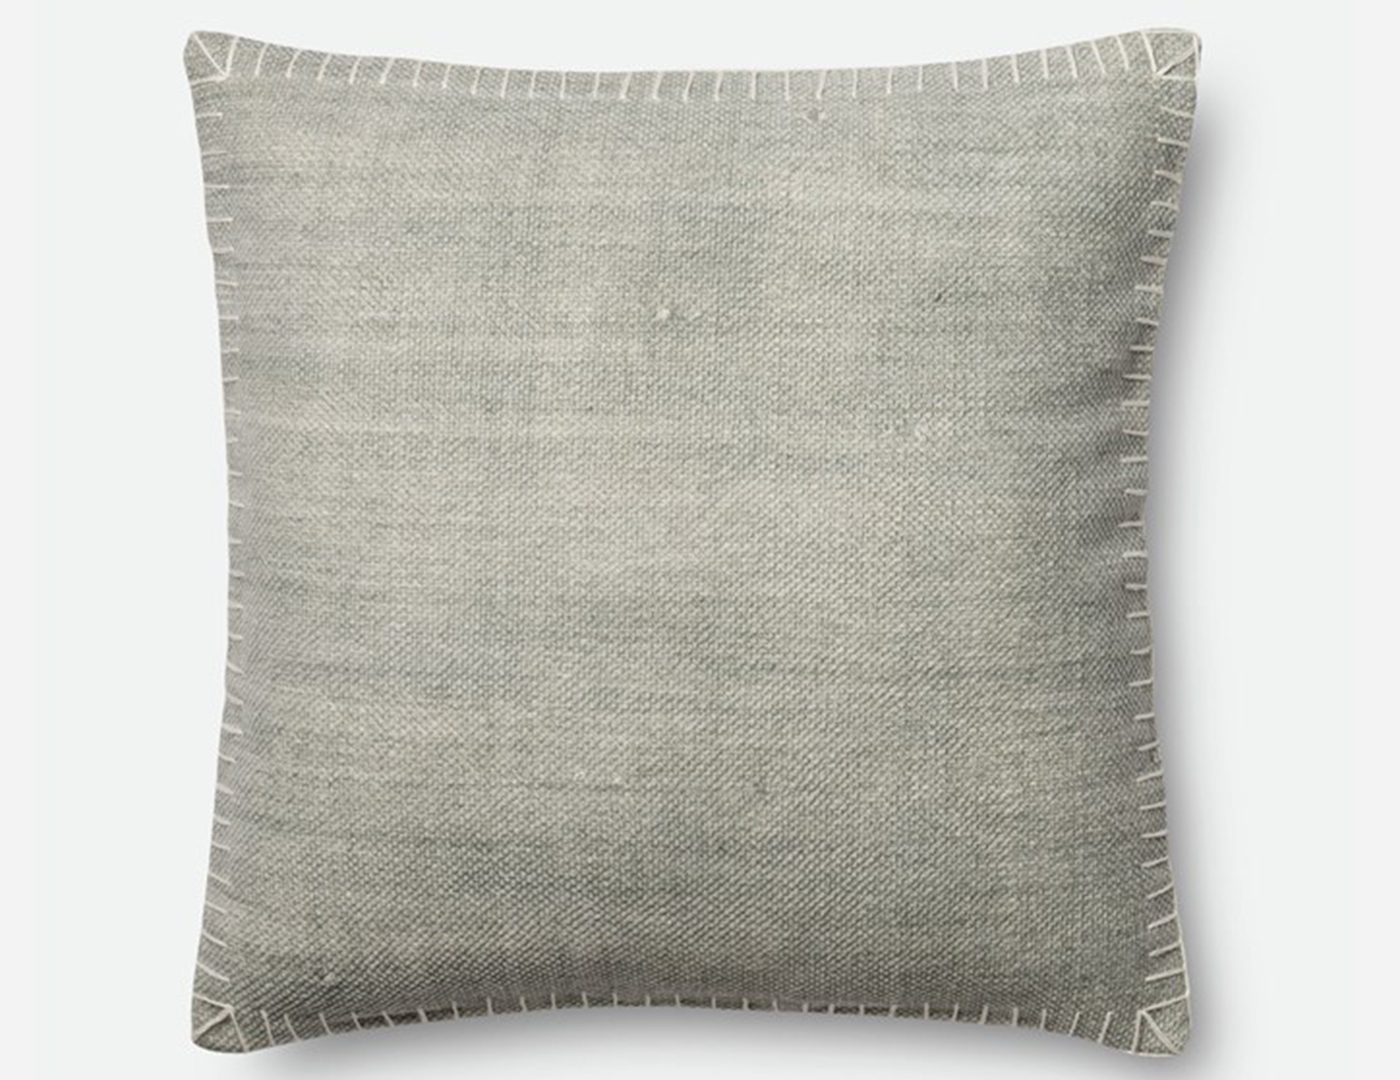 Silver and White Stitches Decorative Pillow